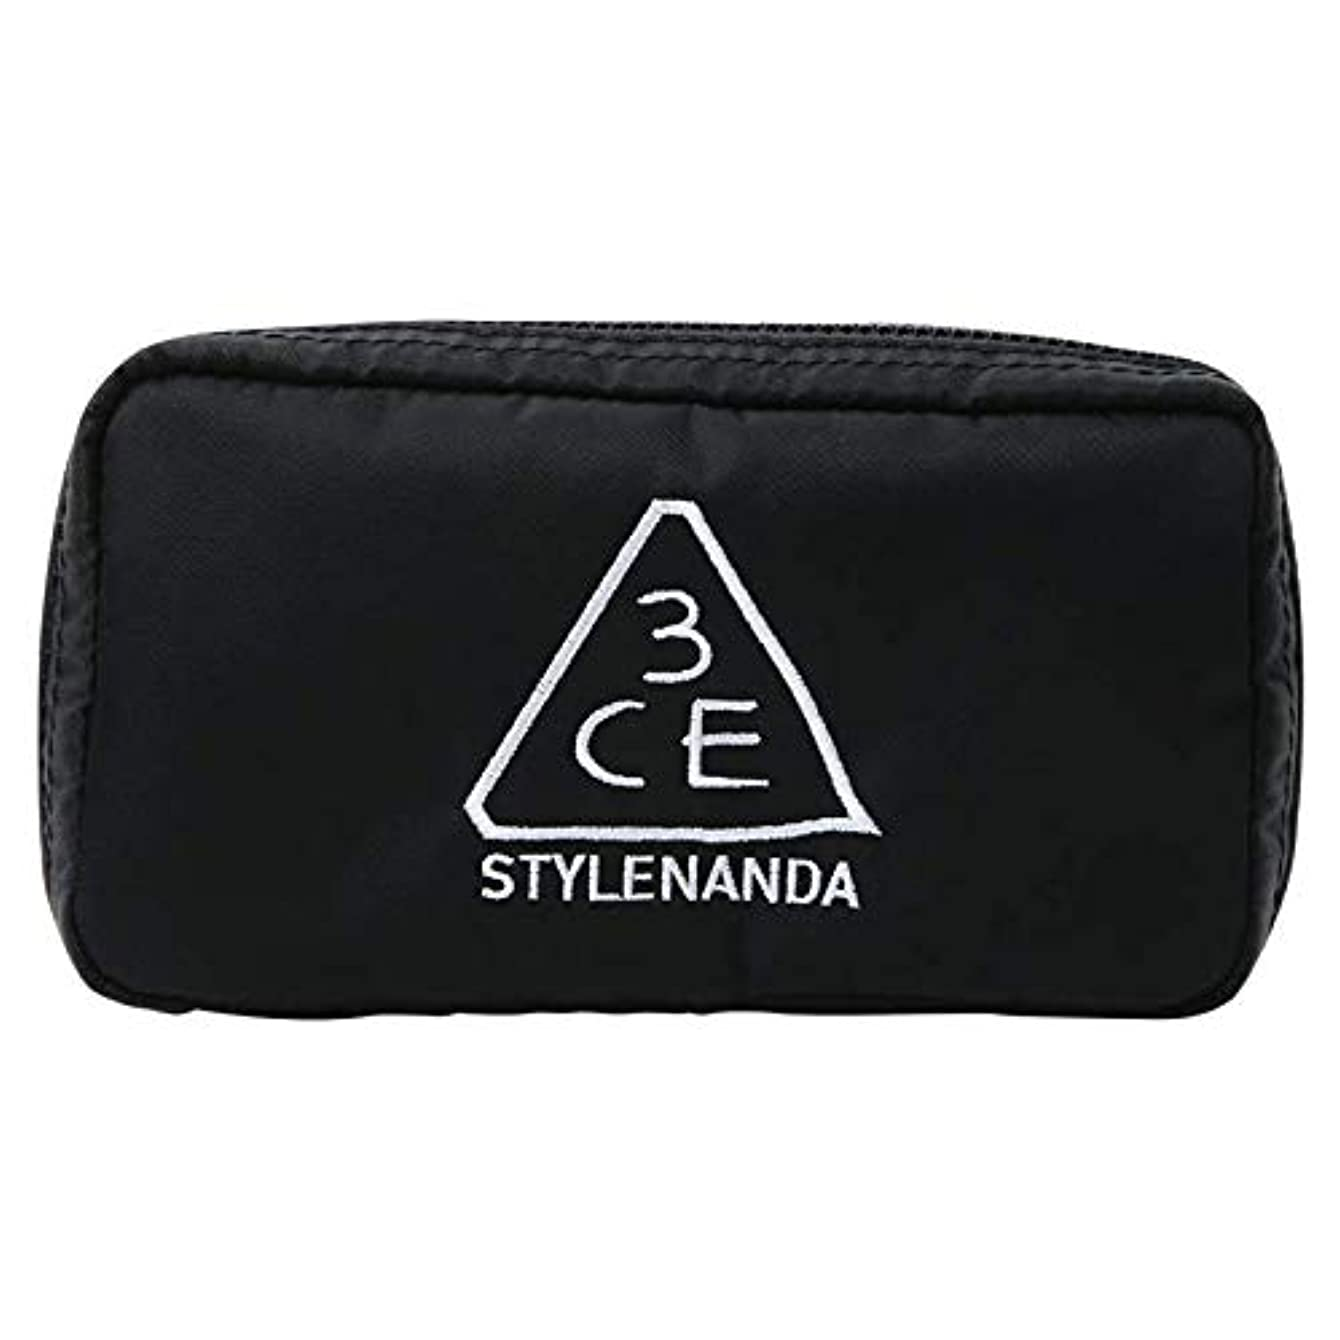 3CE コンパクトポーチ/ 3CE COMPACT POUCH #BLACK [並行輸入品]